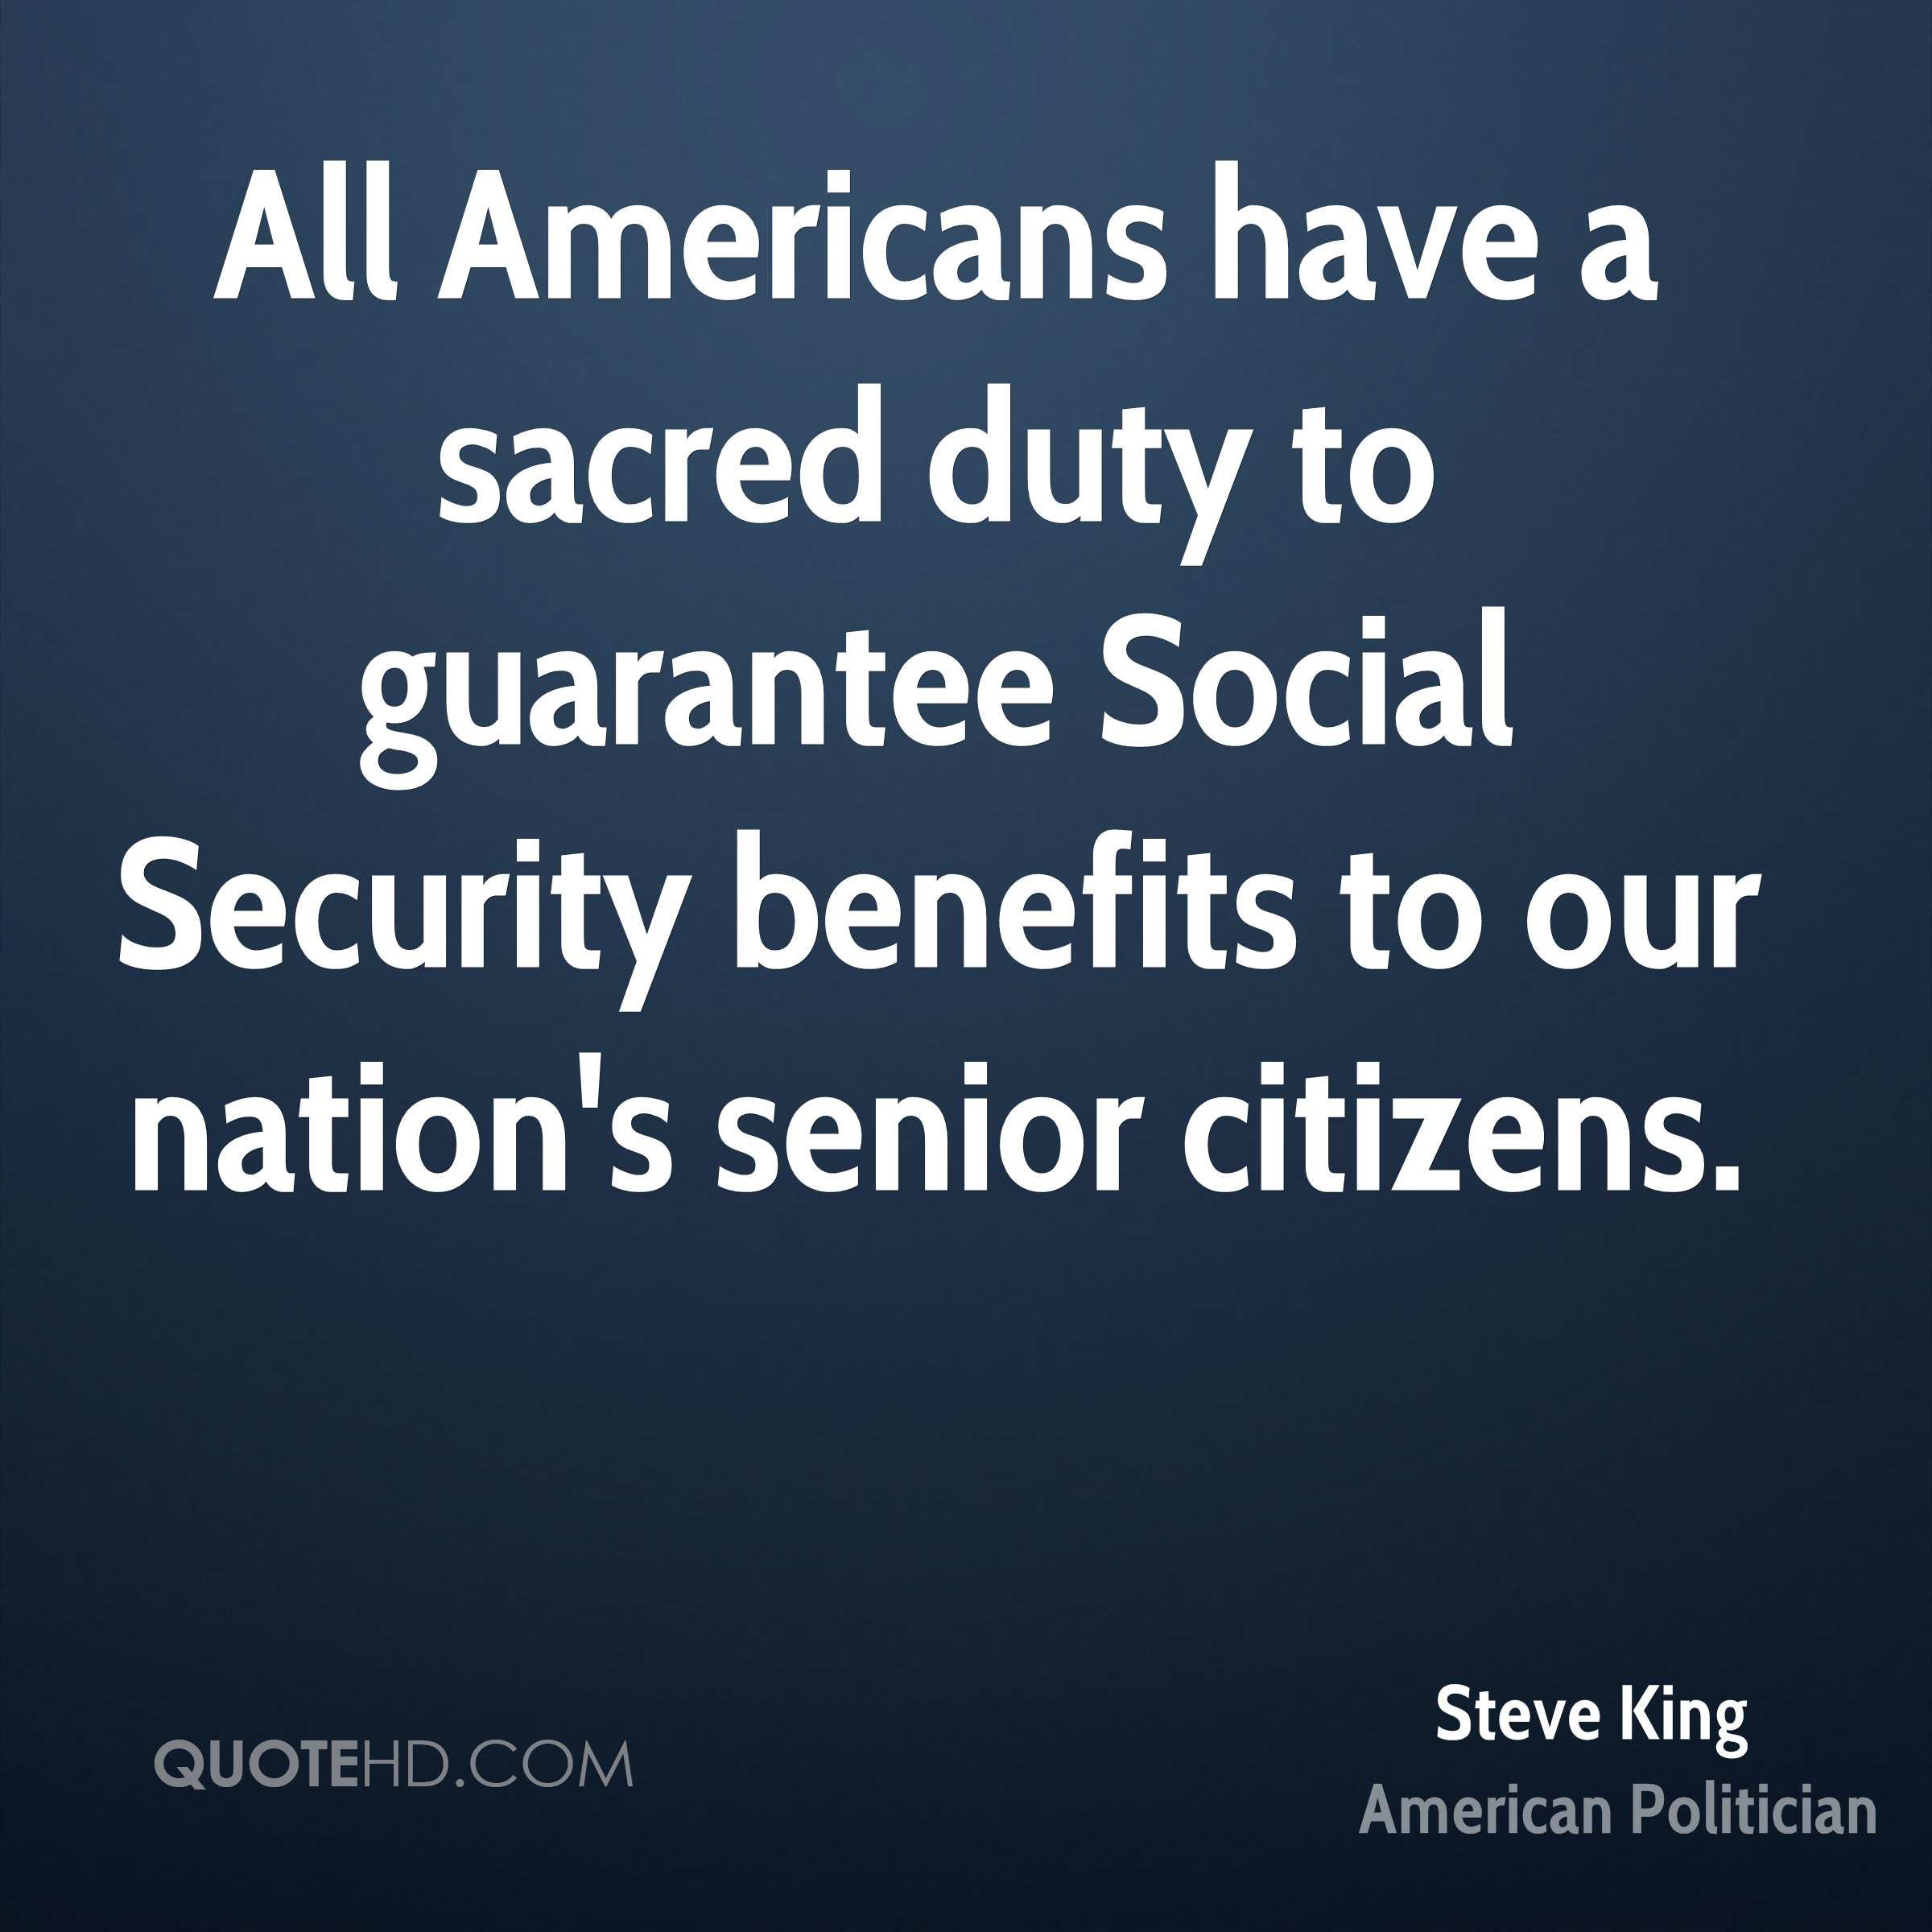 All Americans have a sacred duty to guarantee Social Security benefits to our nation's senior citizens.